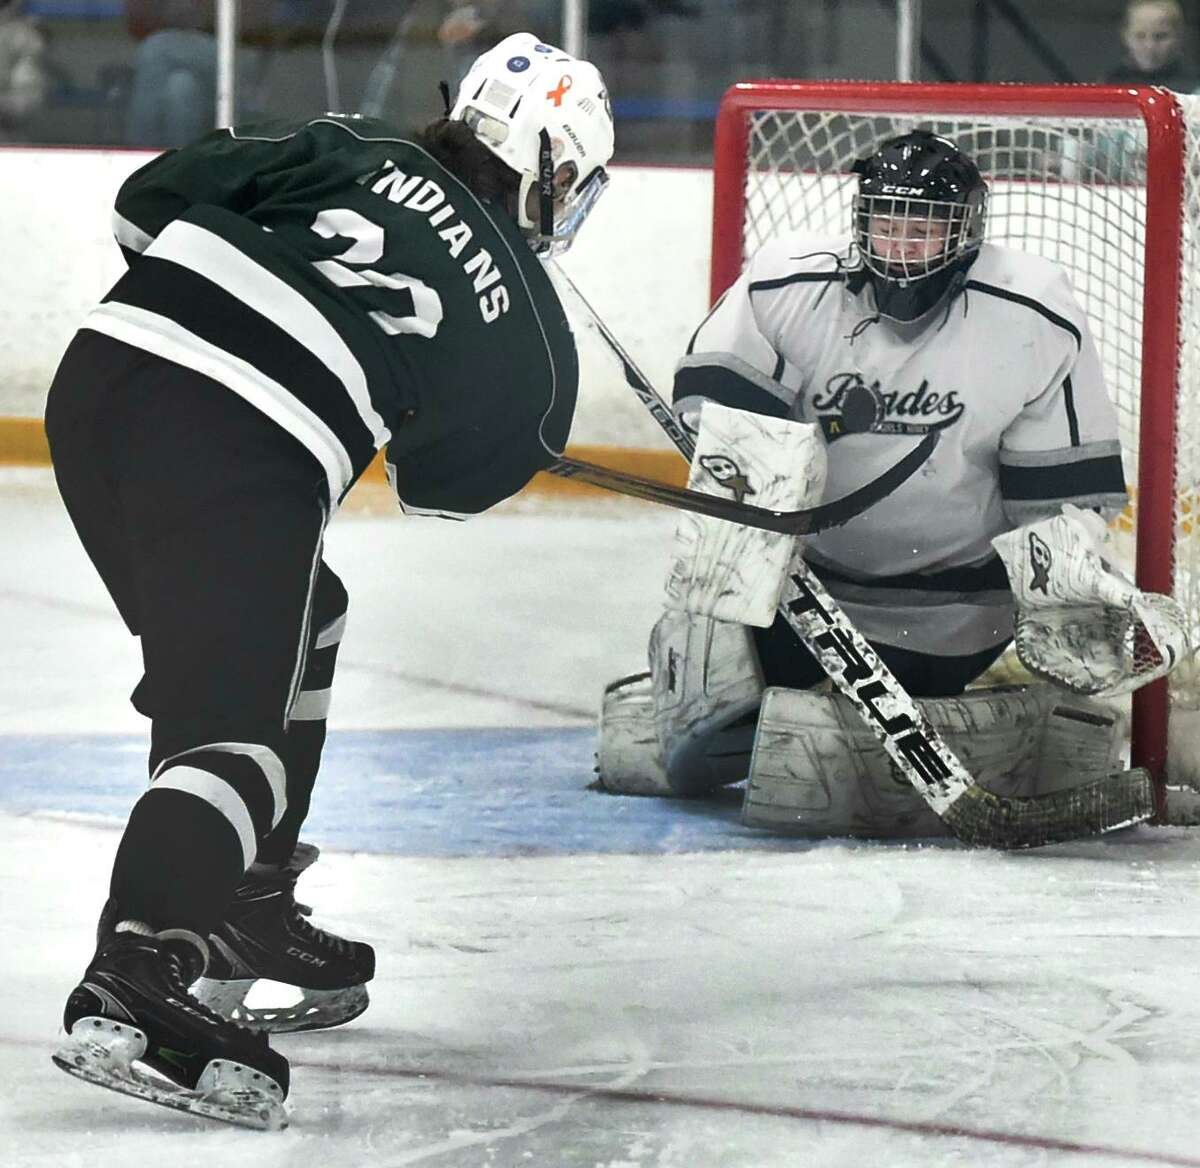 Guilford's Maddie Epke takes a shot on goal against goalie Jude Krukar of Amity-New Haven- Cheshire Blades, right, goal during the second period of the SCC championship on Saturday at Bennett Rink in West Haven.